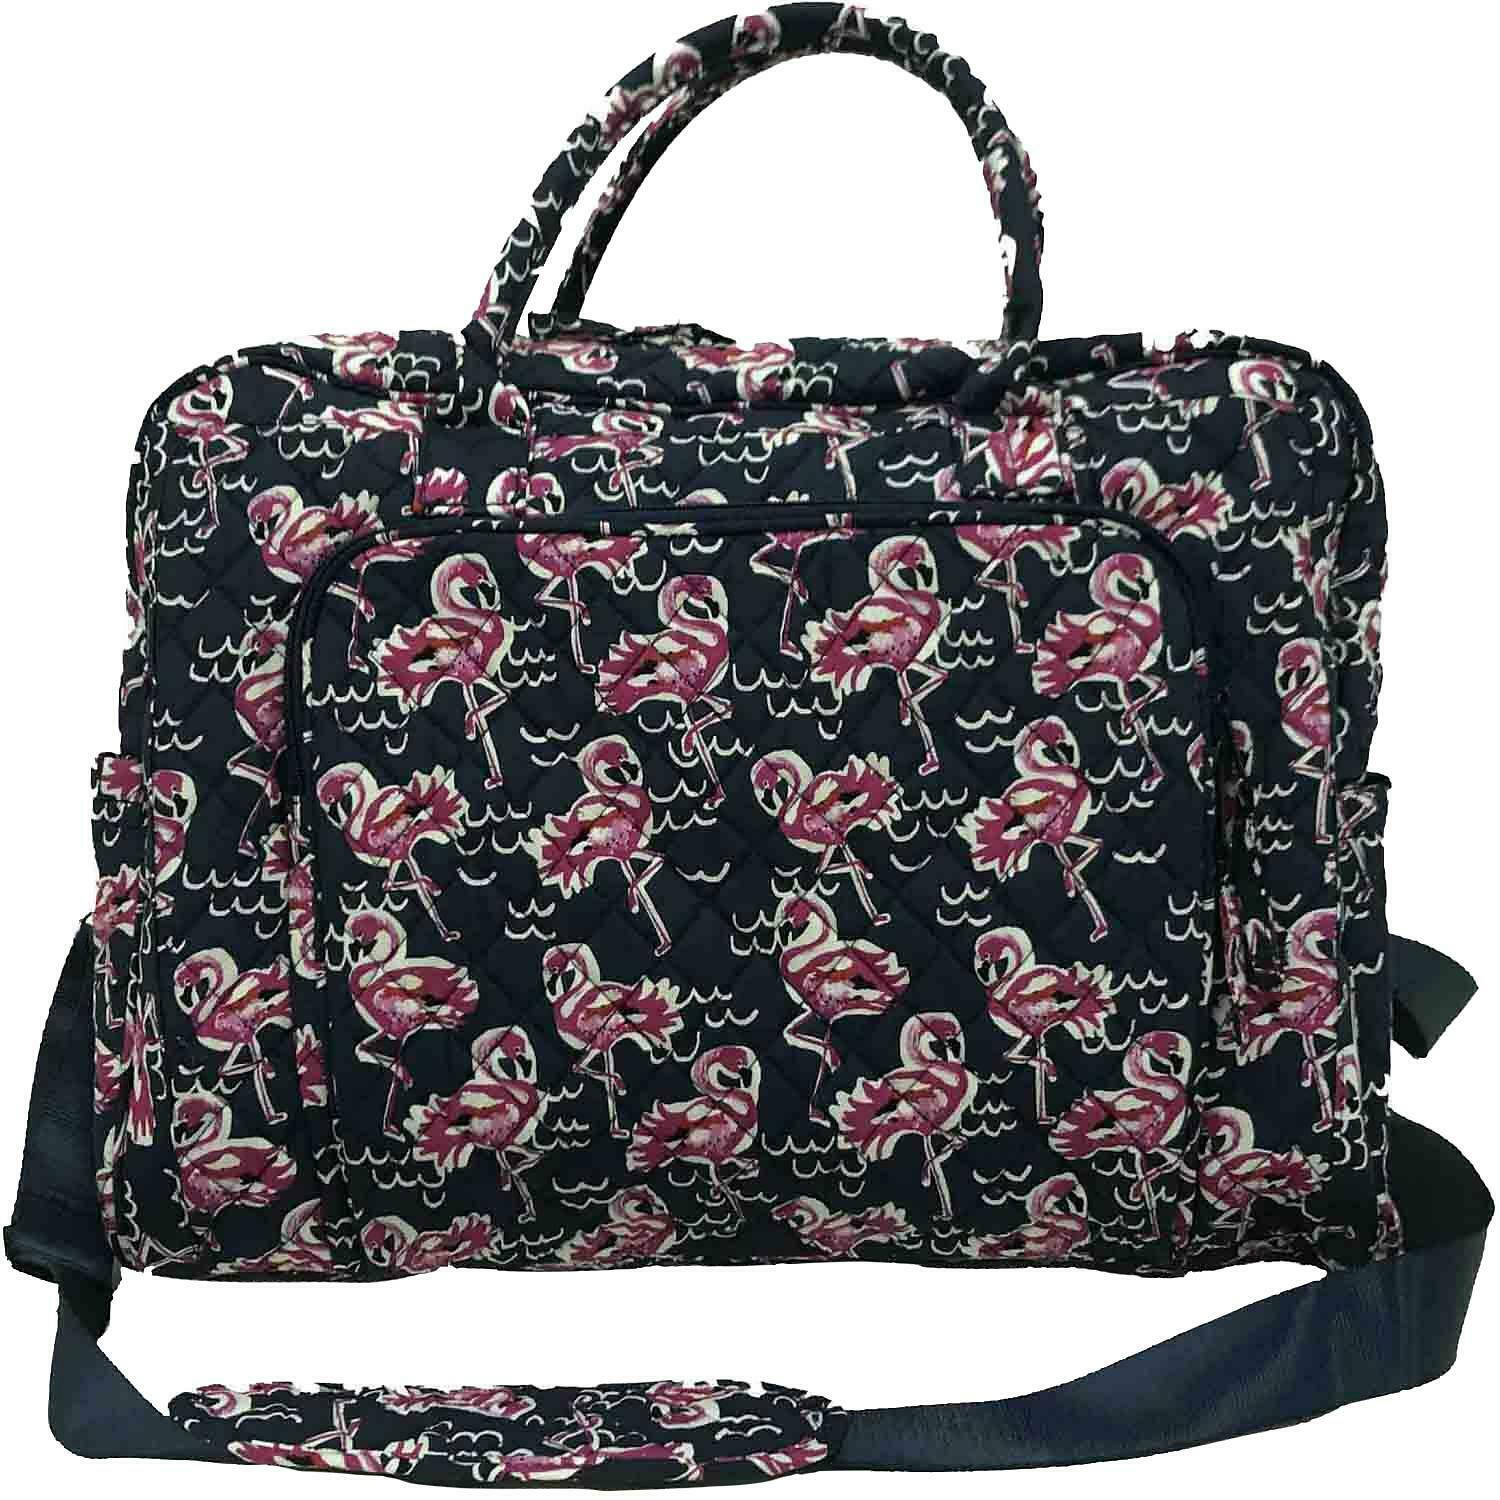 Member's Mark Quilted Travel Tote in Navy Flamingo